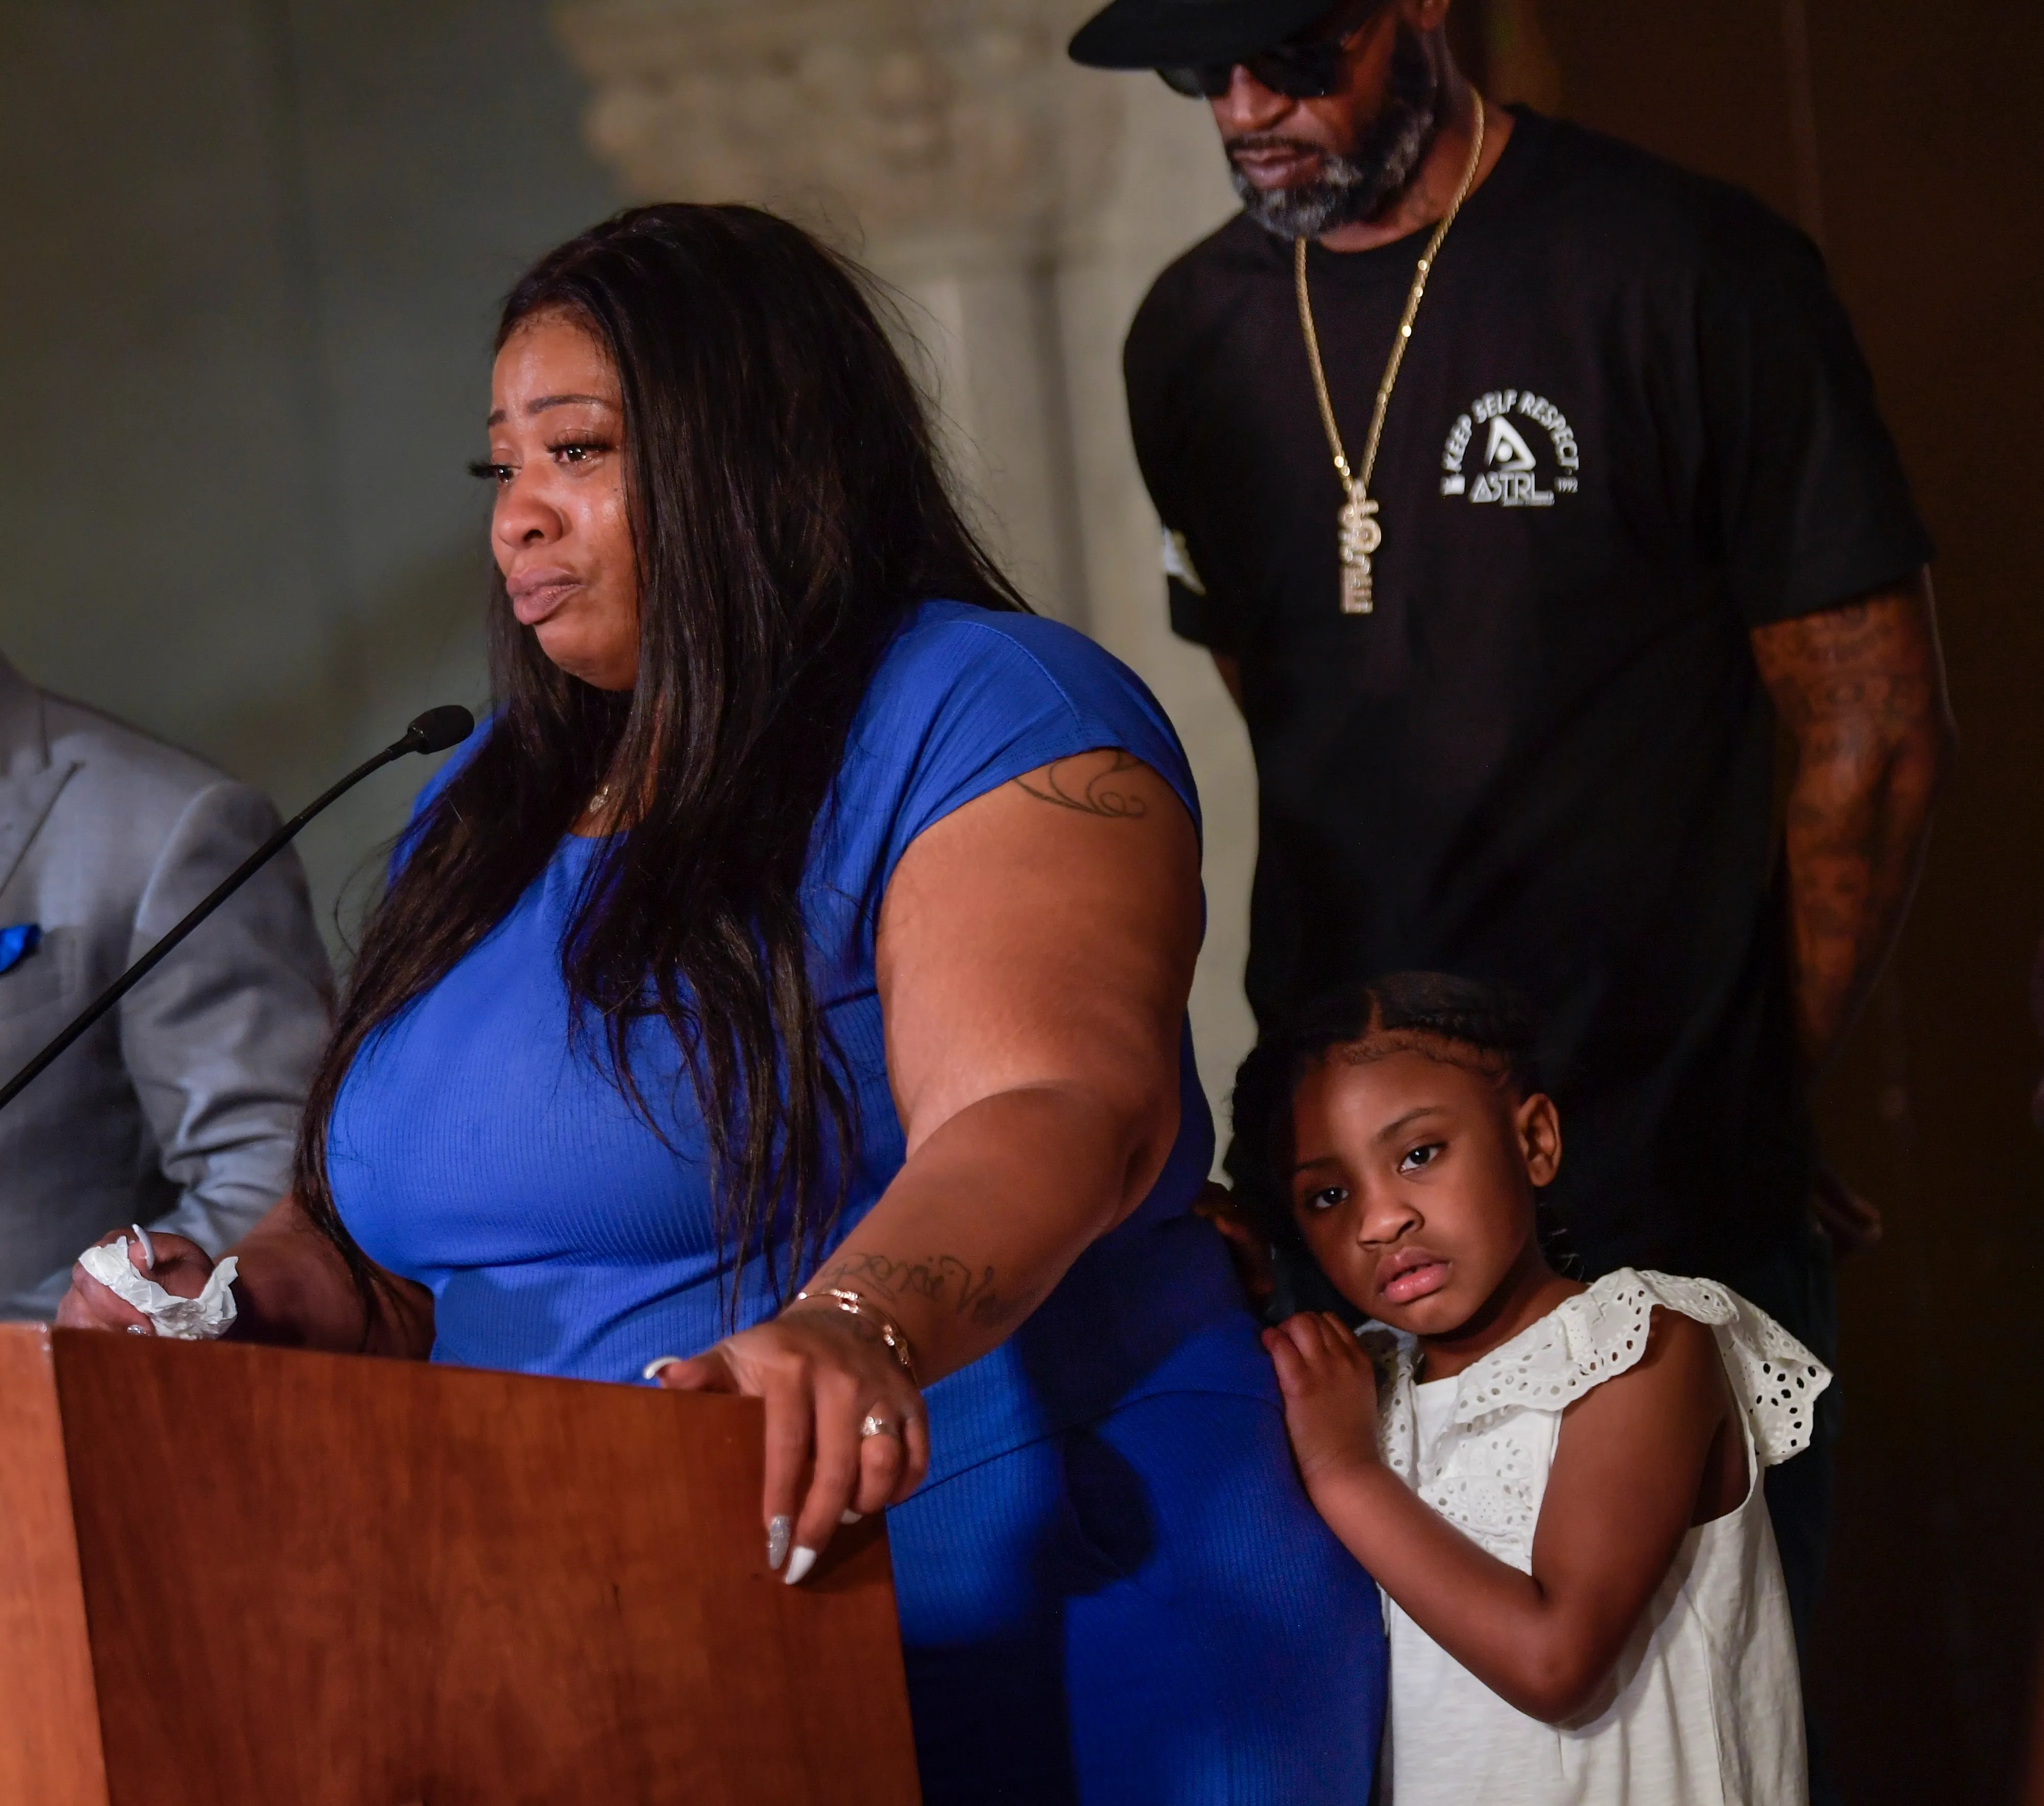 Roxie Washington, the mother of George Floyd's 6-year-old daughter Gianna, center, speaks to the media along with former NBA player, Stephen Jackson, right, a childhood friend of George Floyd, during a press conference at Minneapolis City Hall on Tuesday, June 2, 2020. George Floyd died in Minneapolis police custody on May 25, 2020.